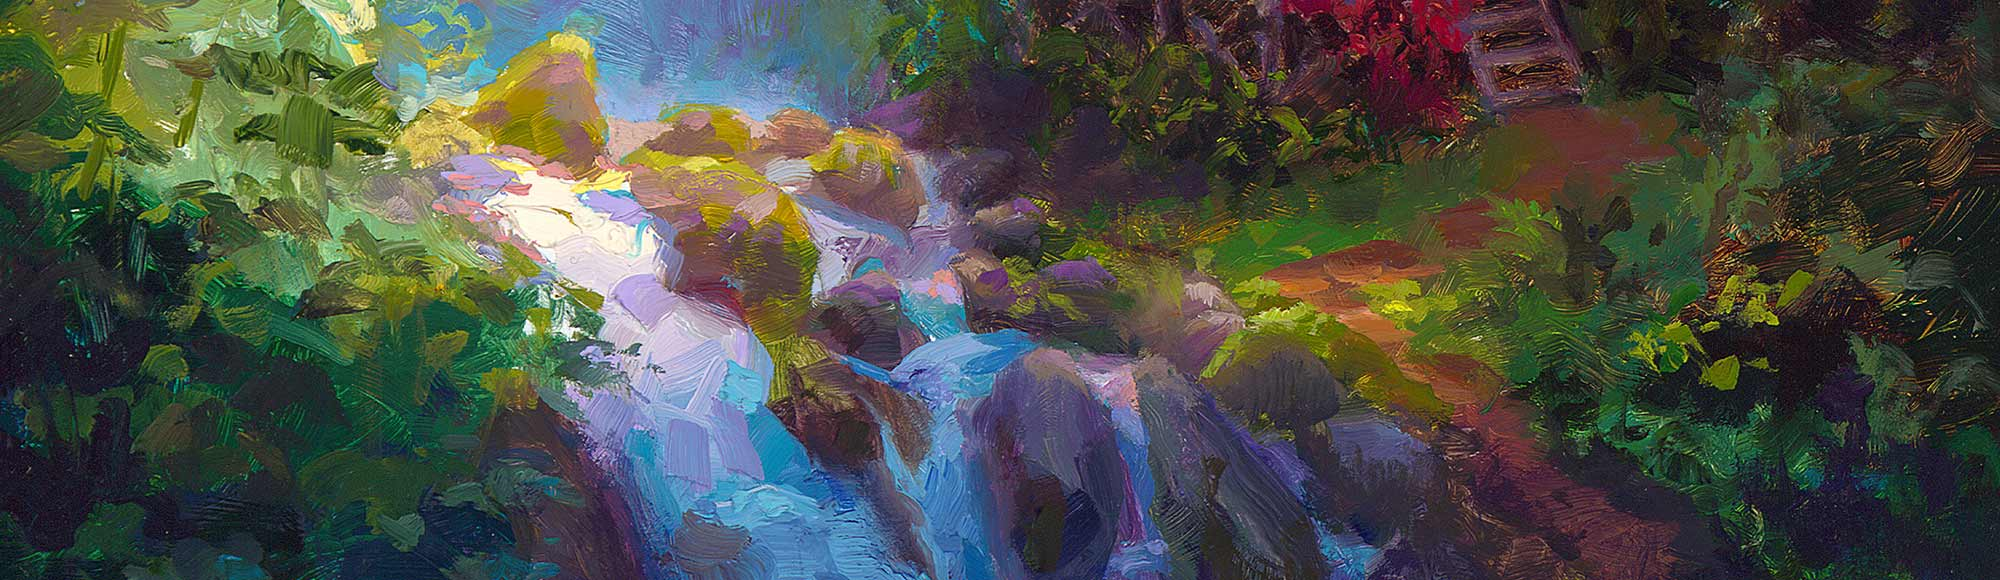 Waterfall landscape painting on canvas by tropical artist Karen Whitworth